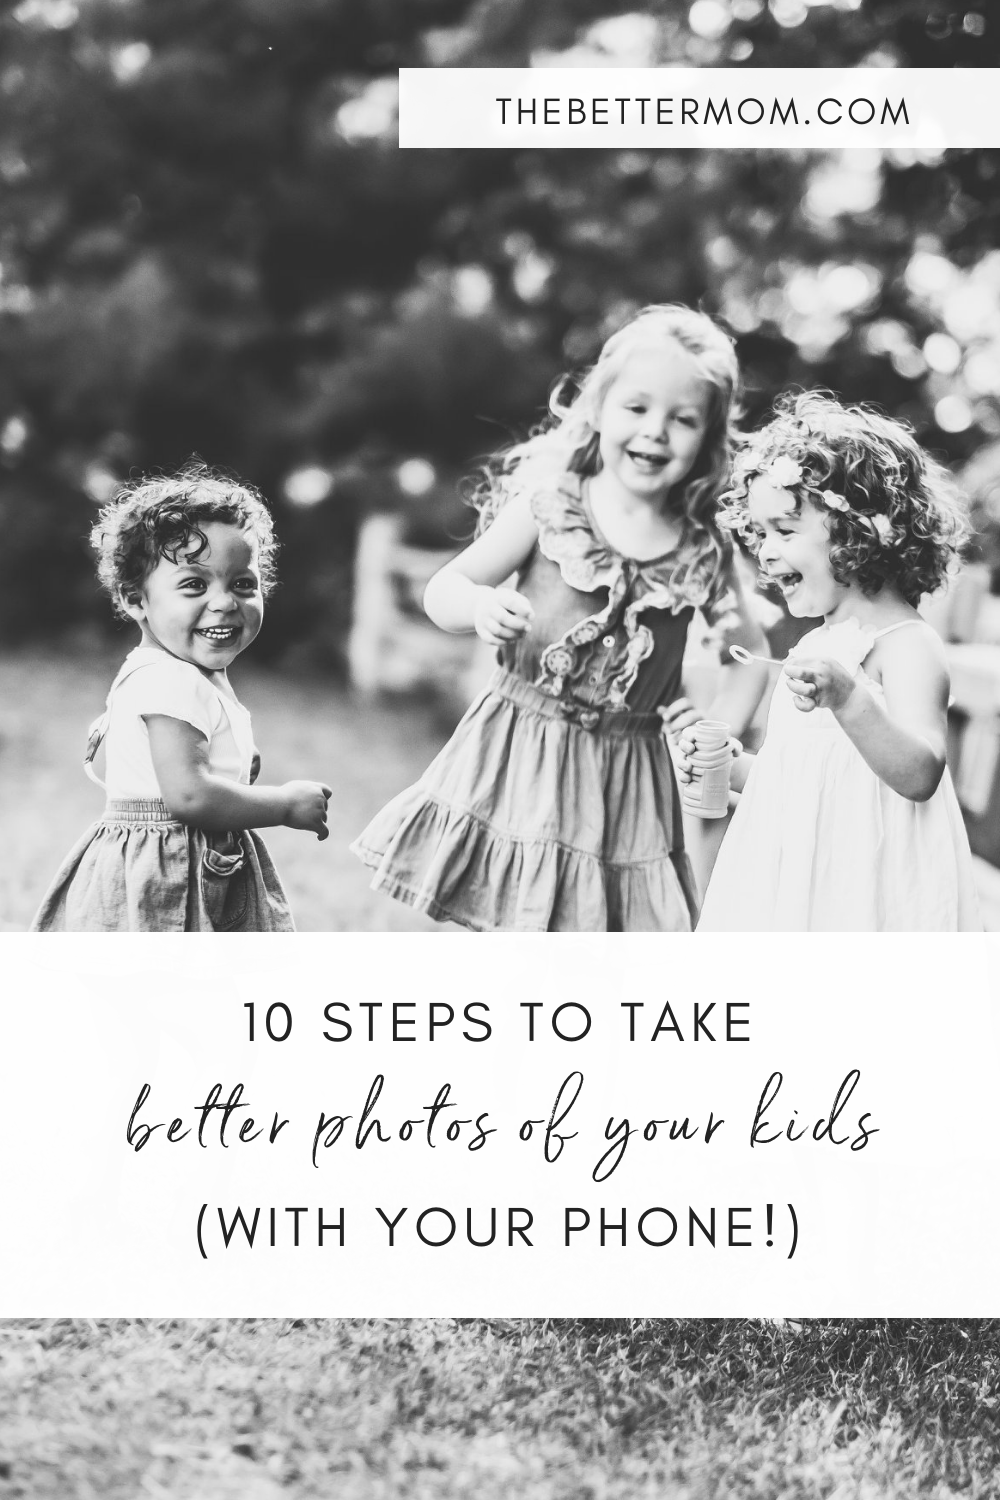 Do you want to learn how to take better photos of your kids? We do too! So today, we're learning some new skills from a professional photographer about how to capture special moments using only our smartphone!